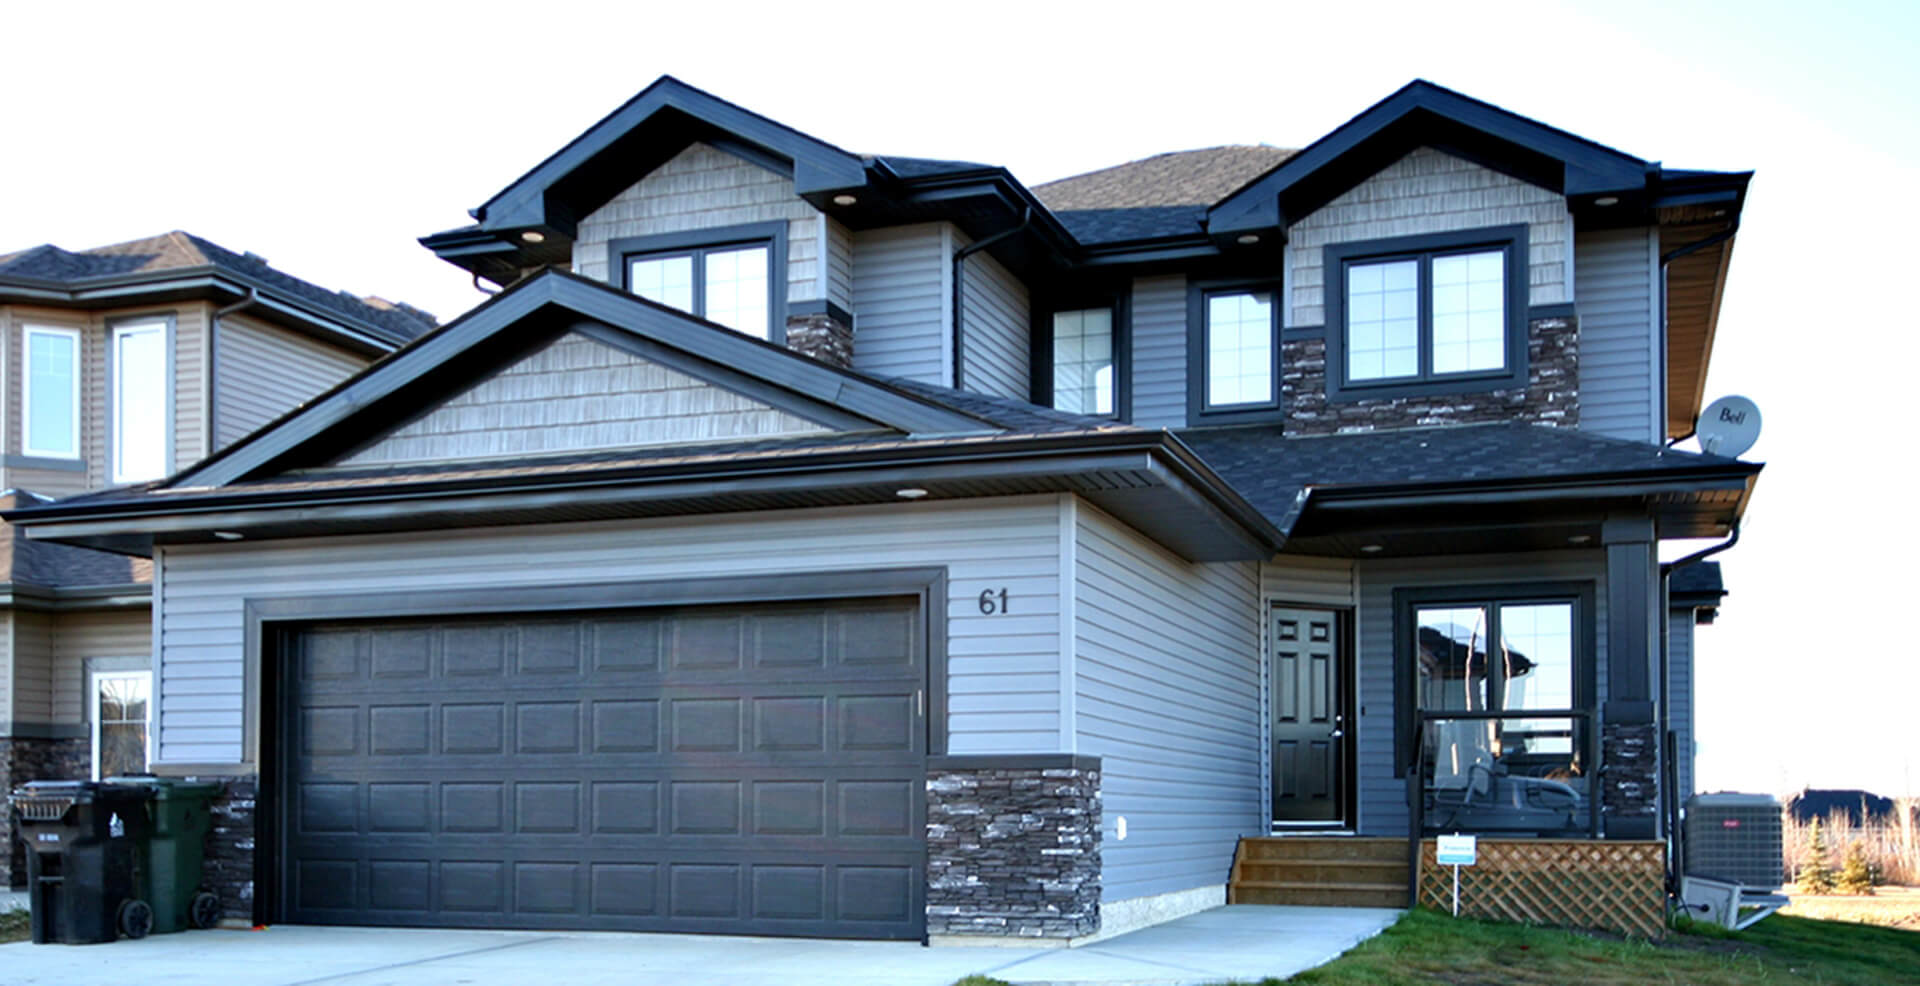 hainsworth_rococo-homes_exterior-front